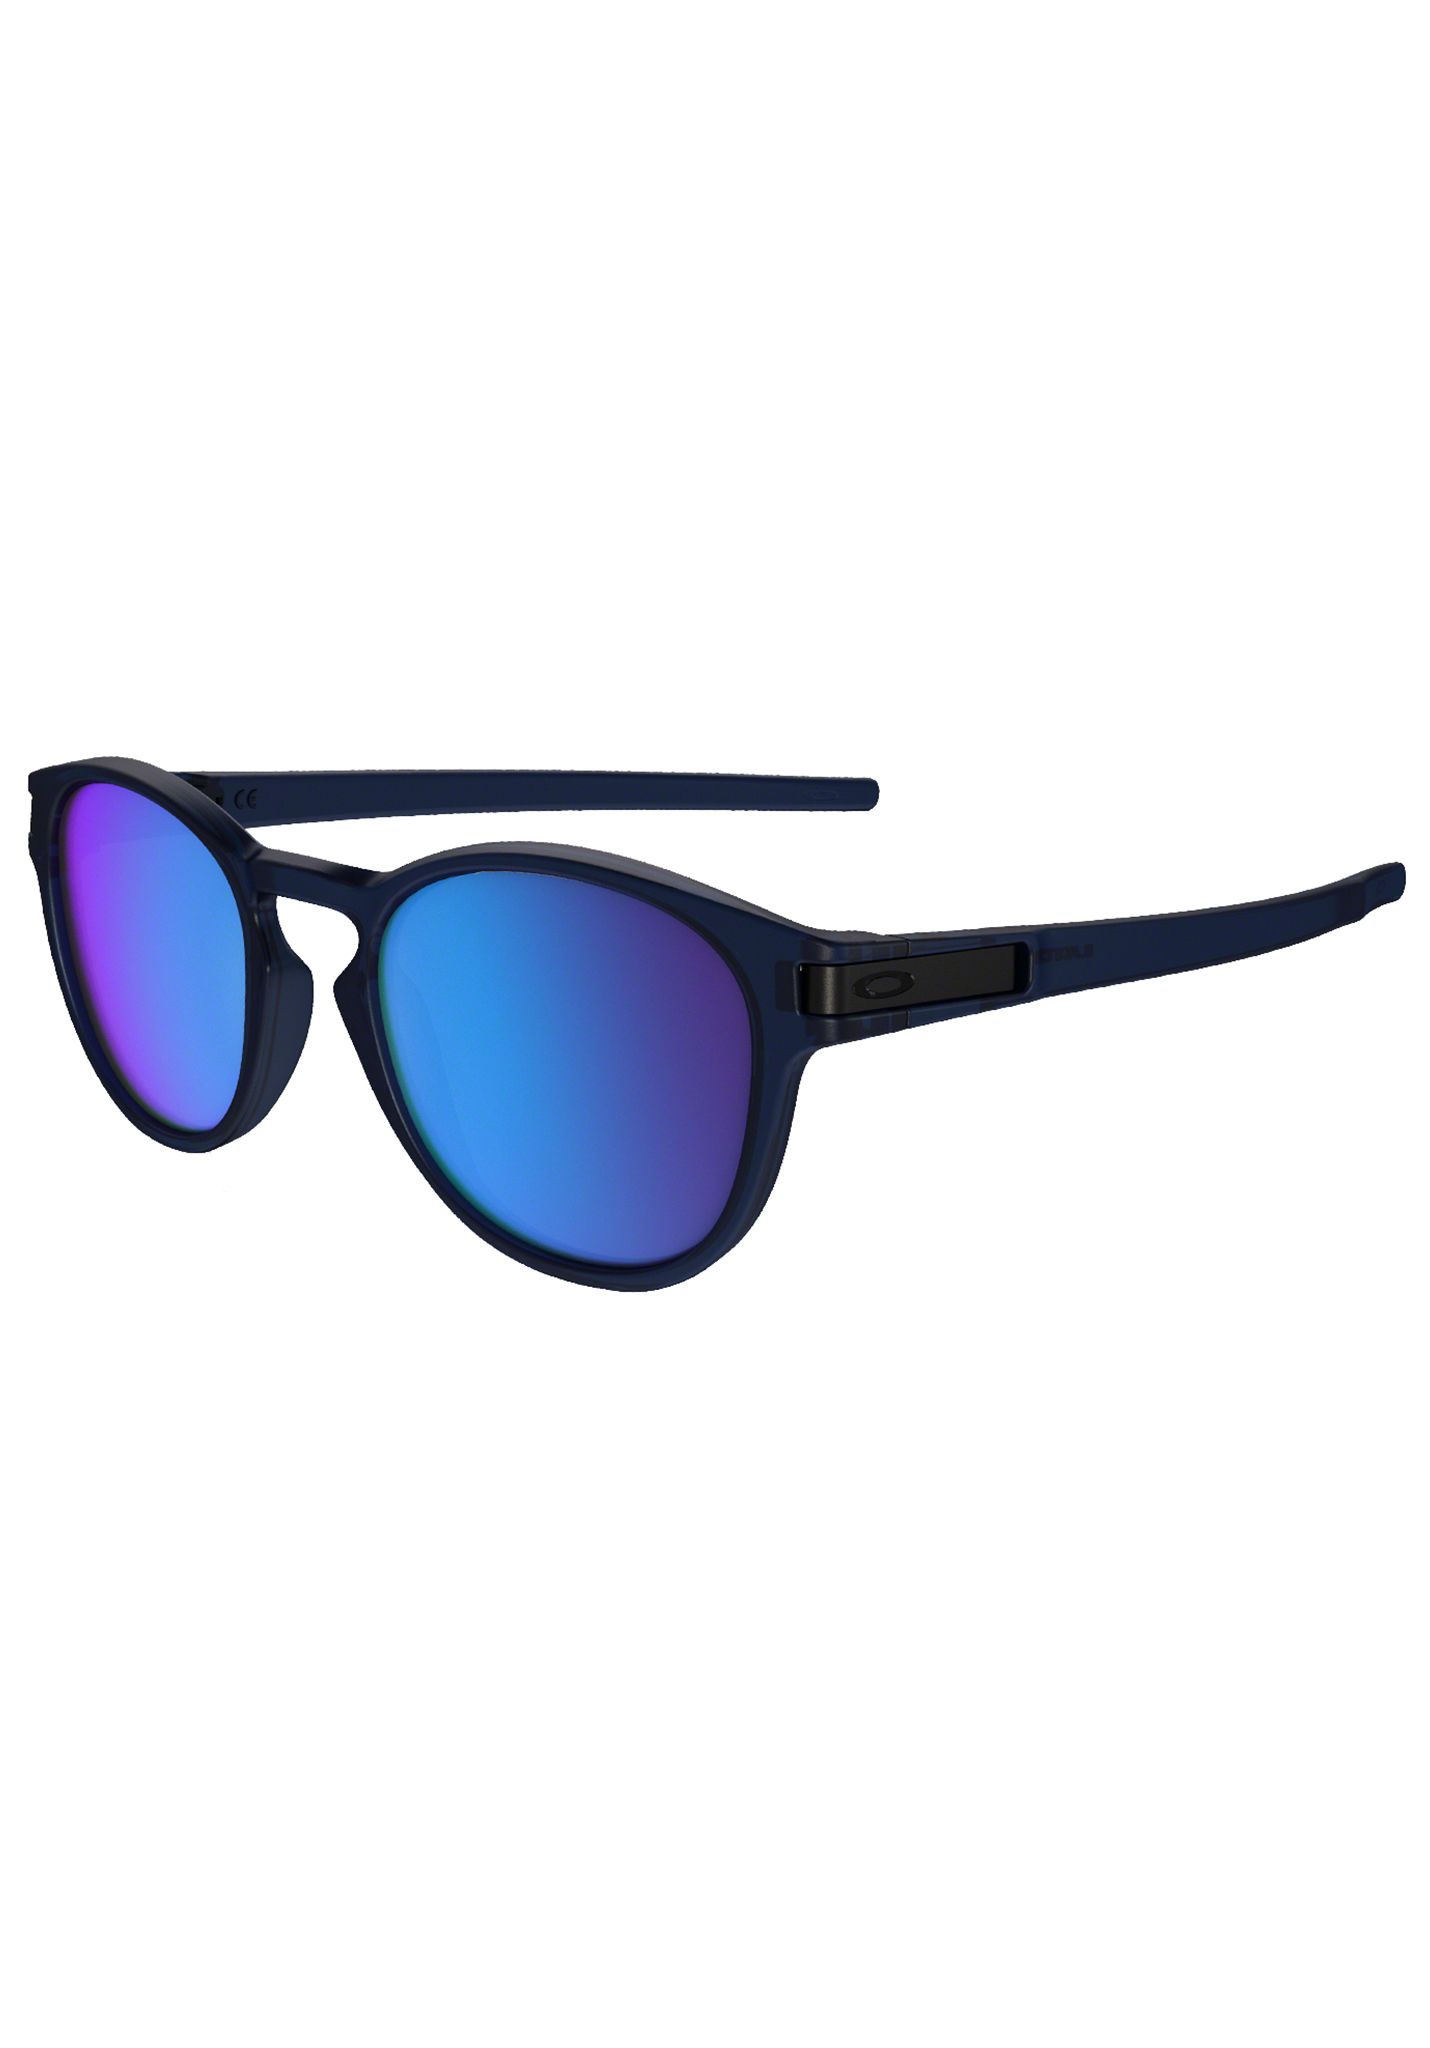 a40dcdef68 OAKLEY SALE - save up to 70%